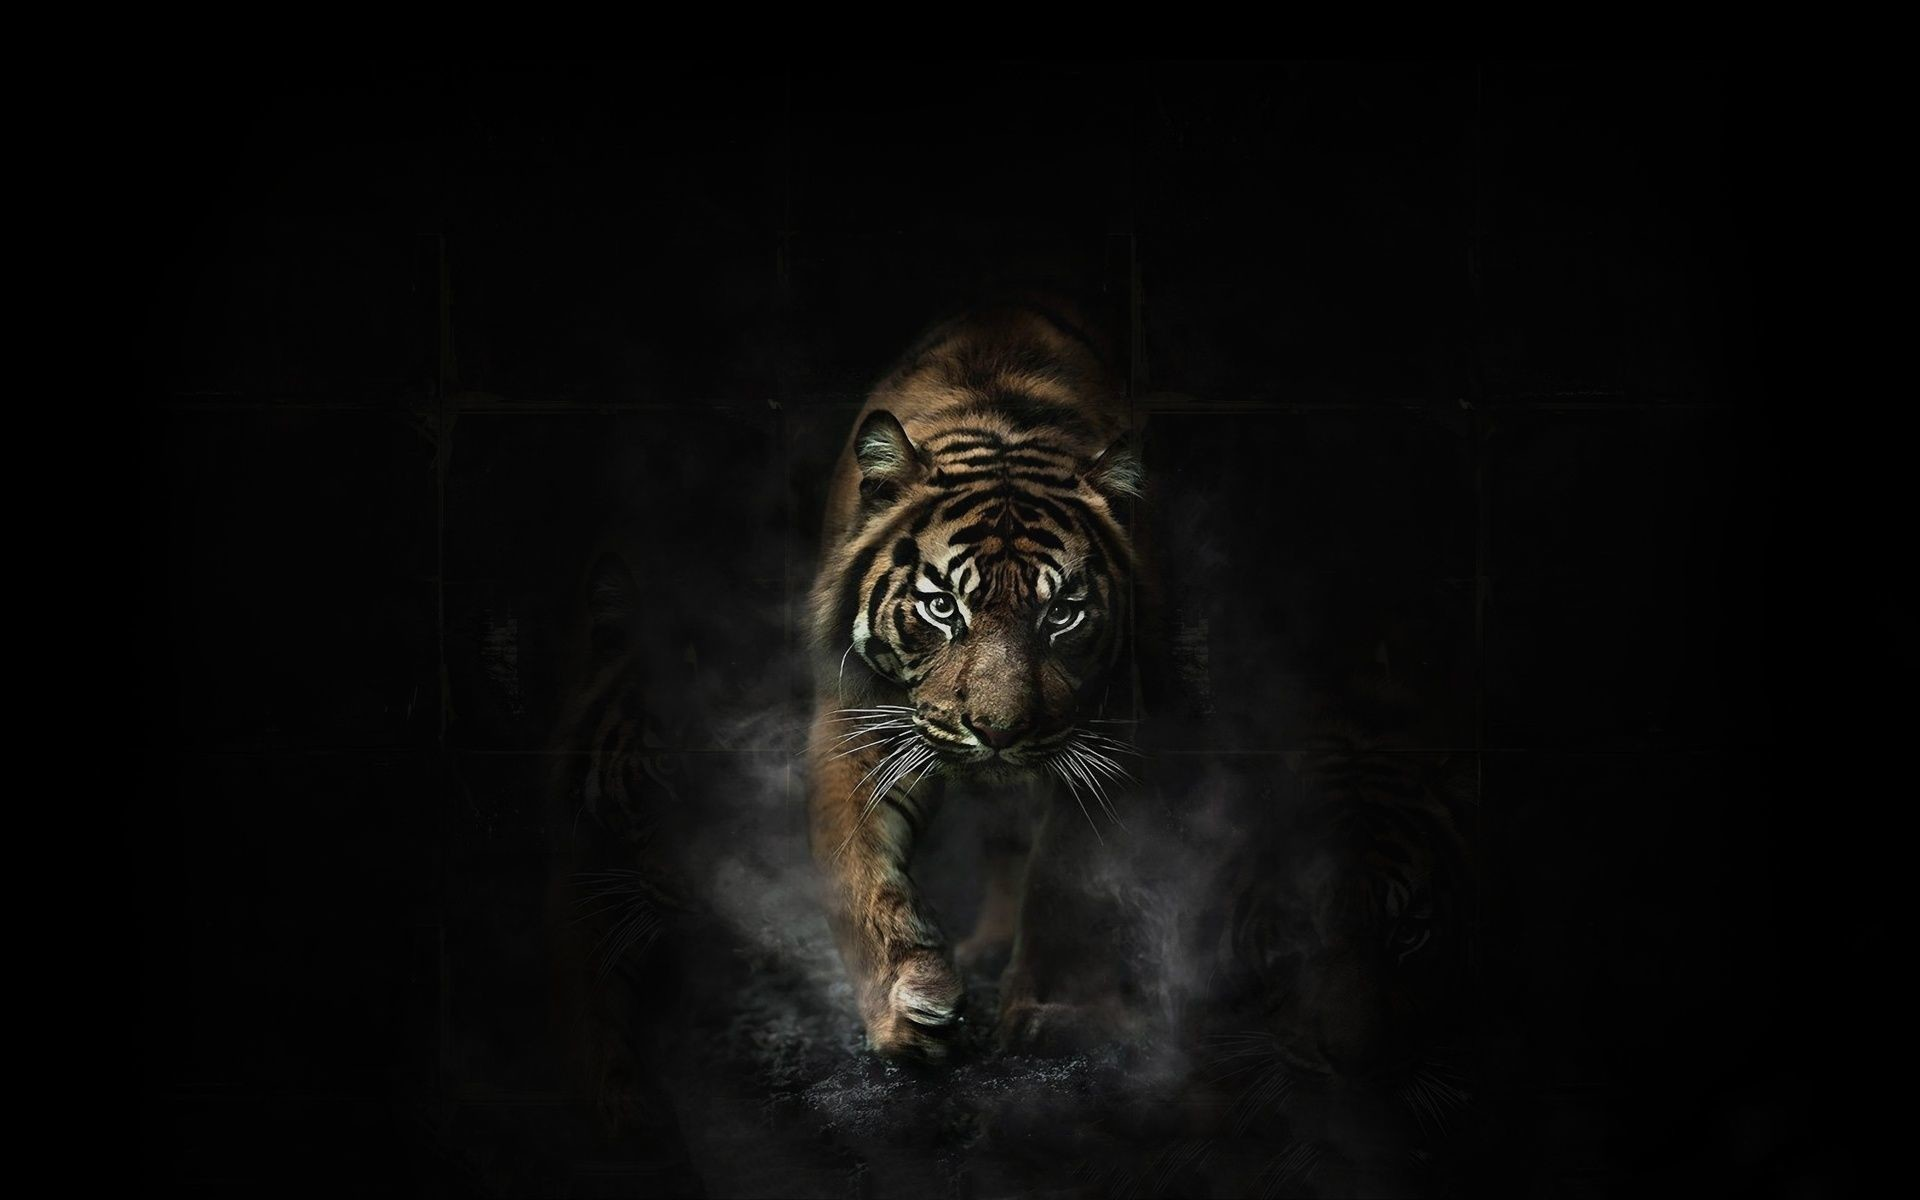 Tiger Wallpapers Collection For Free Download   HD Wallpapers   Pinterest   Tiger  wallpaper, Wallpaper and Hd wallpaper